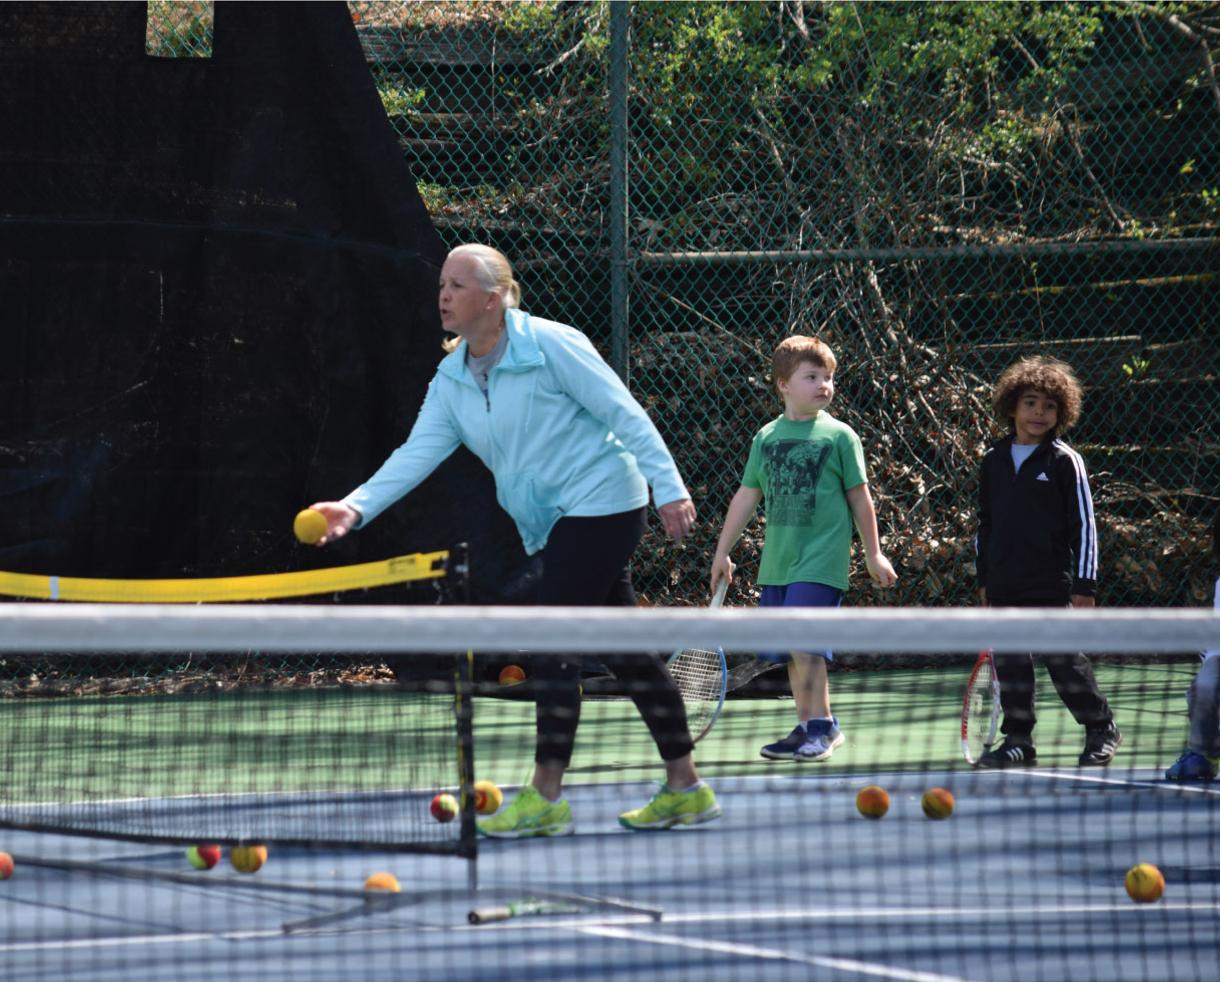 Week of Koa Sports Tennis Camp at North Springfield Swim Club or Tallyho Swim and Tennis Club